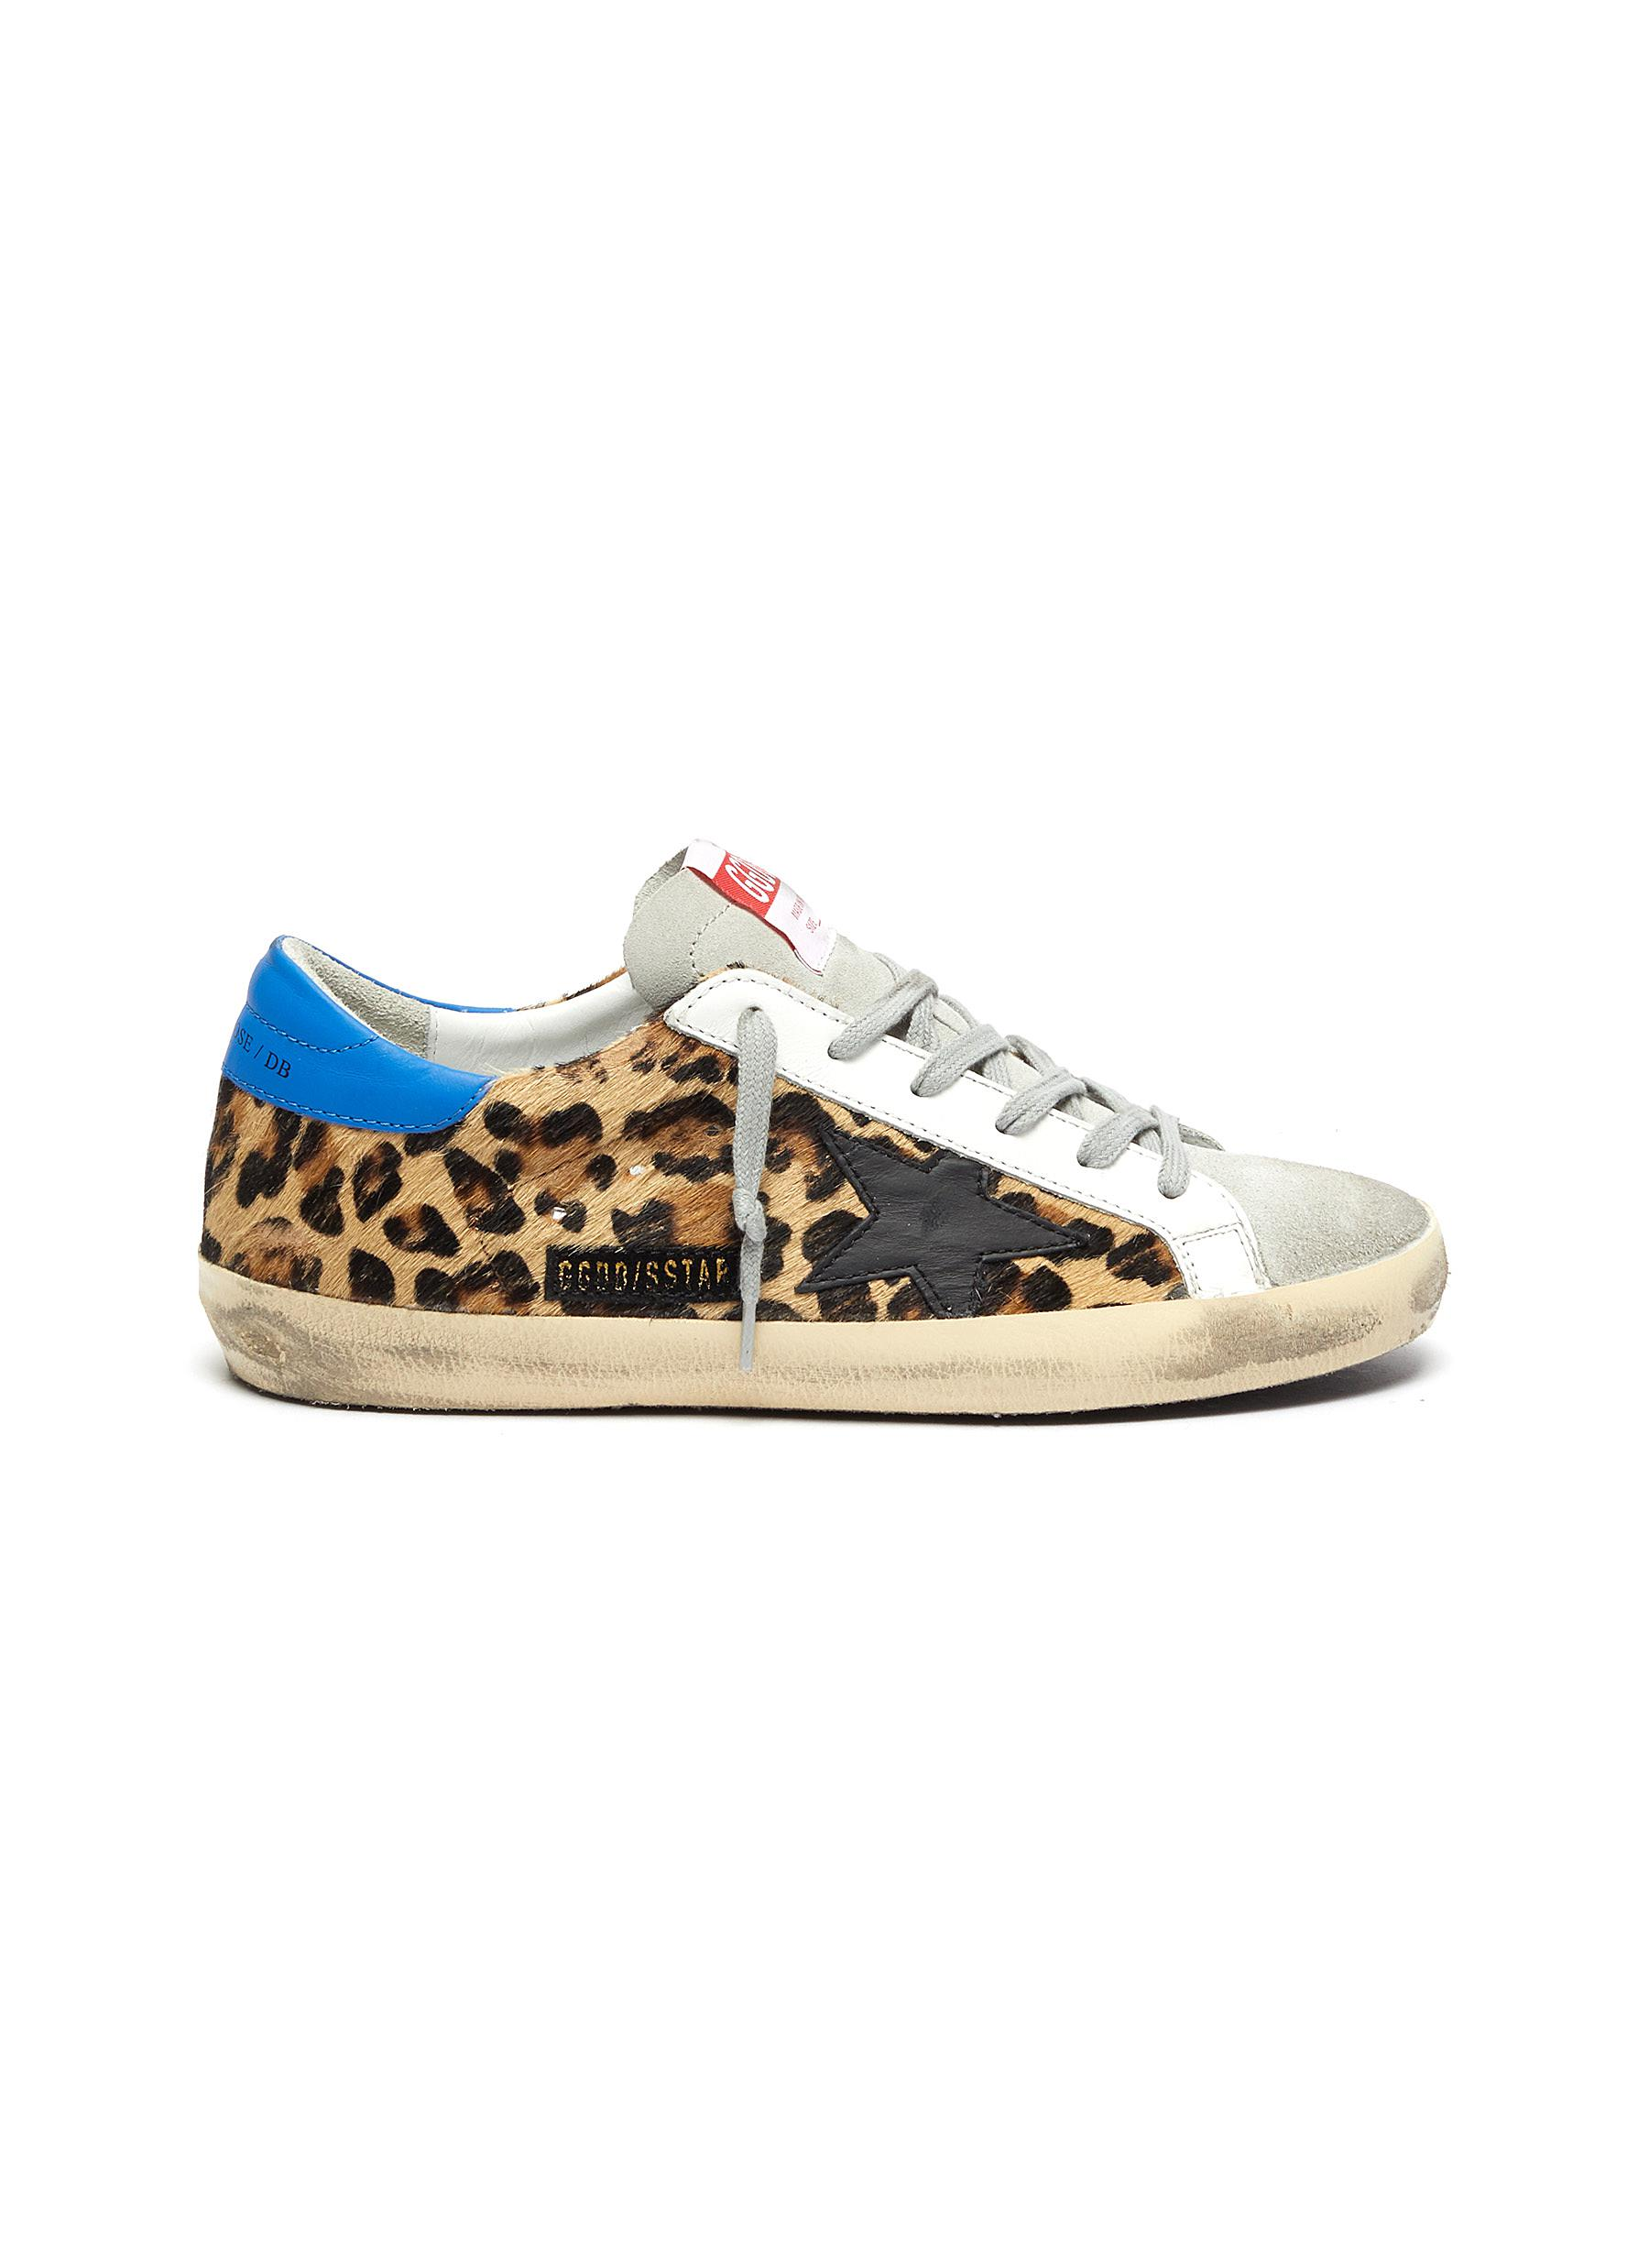 Superstar leopard print panelled sneakers by Golden Goose